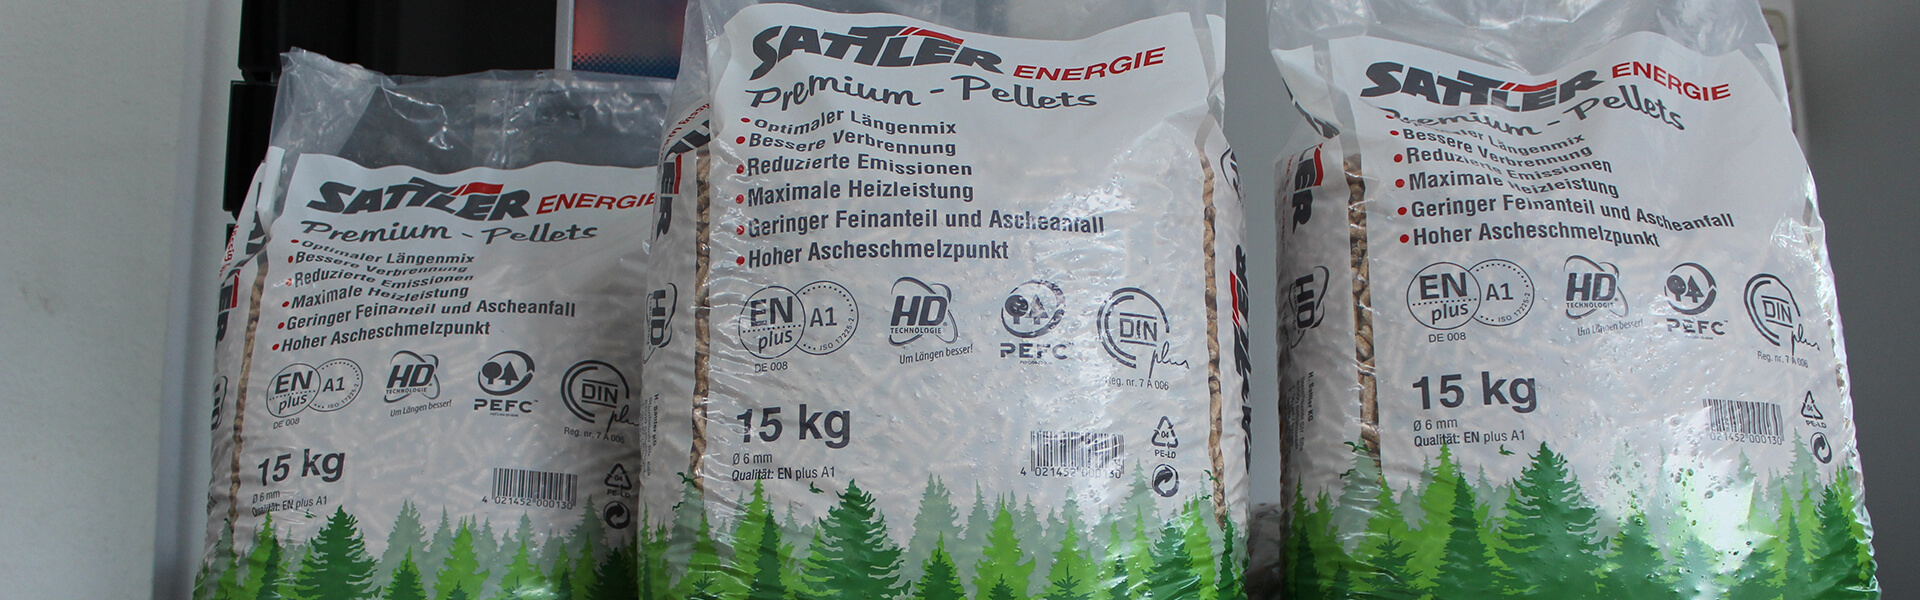 Sattler Holzpellets